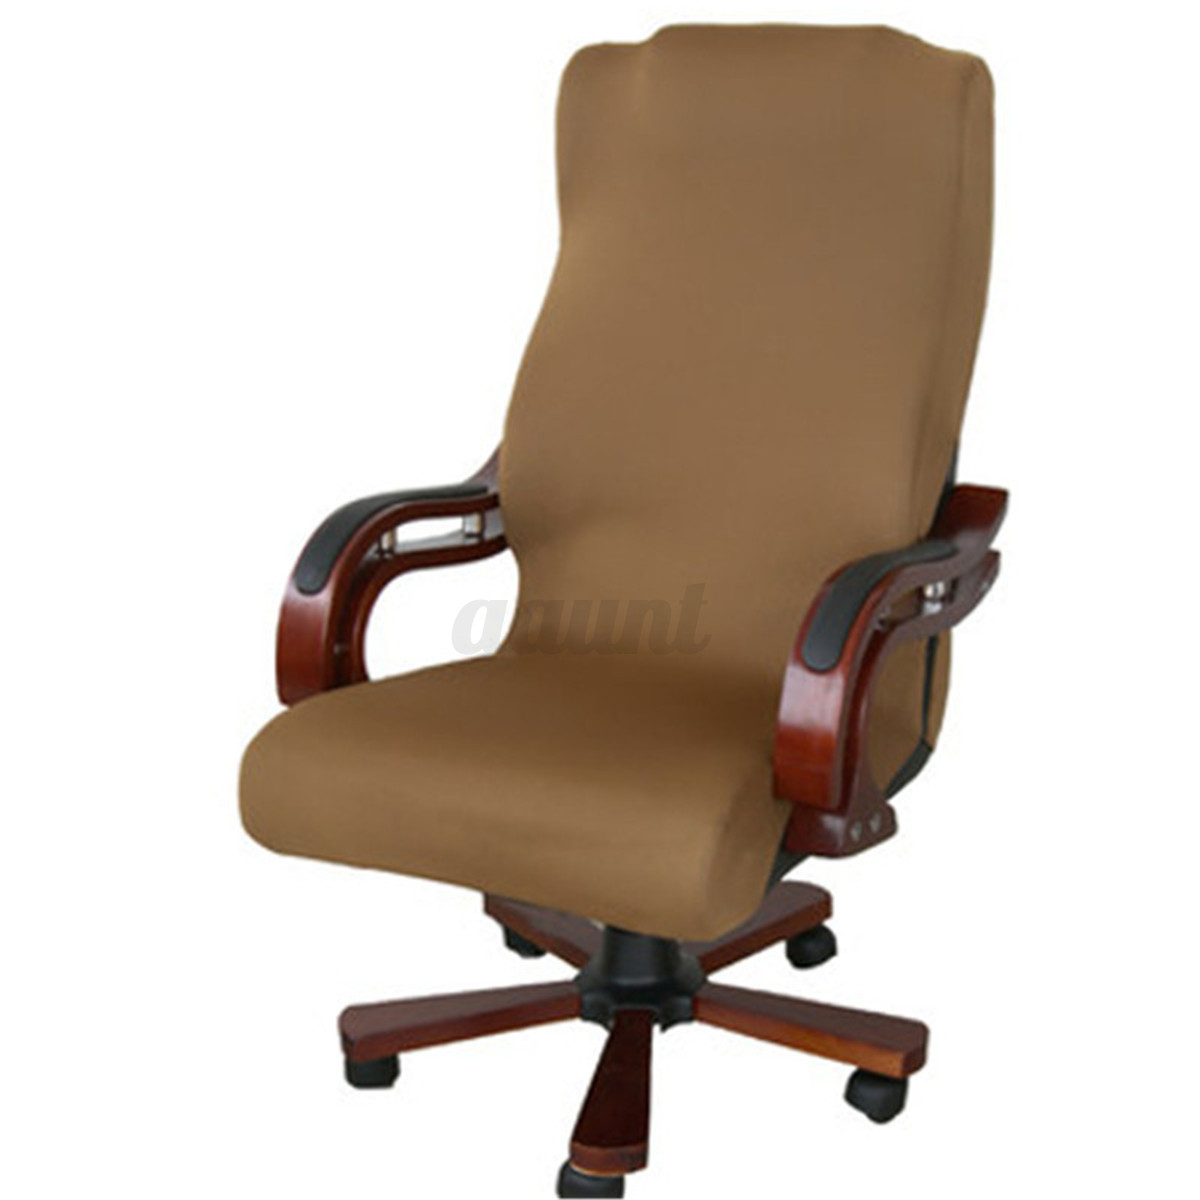 office chair covers india hsn code swivel computer cover stretch armchair